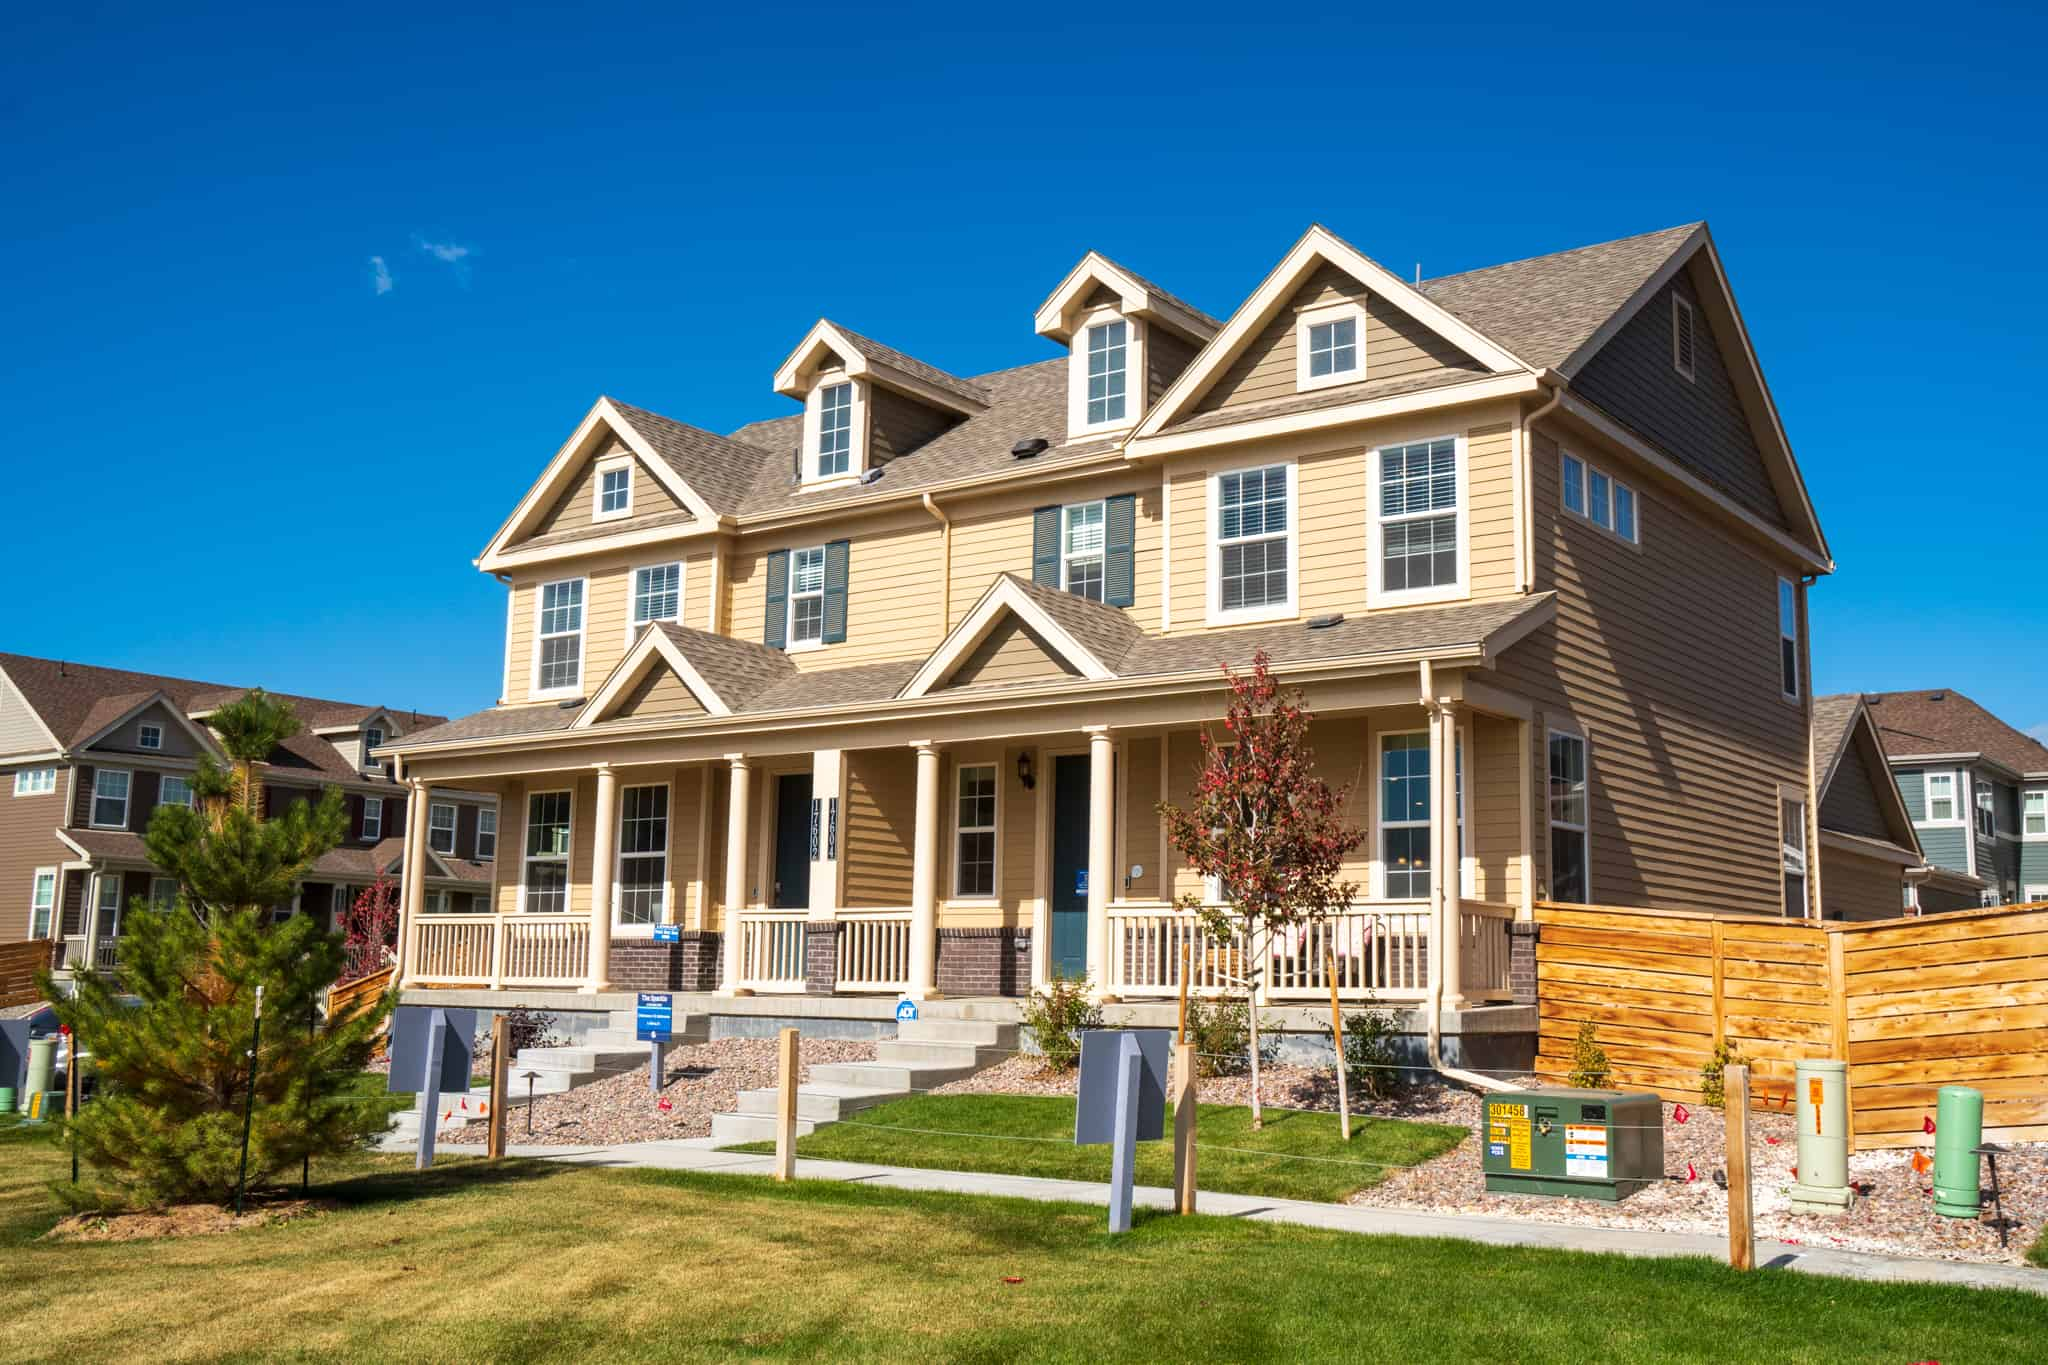 Palisade Park Paired Homes by Lennar Homes